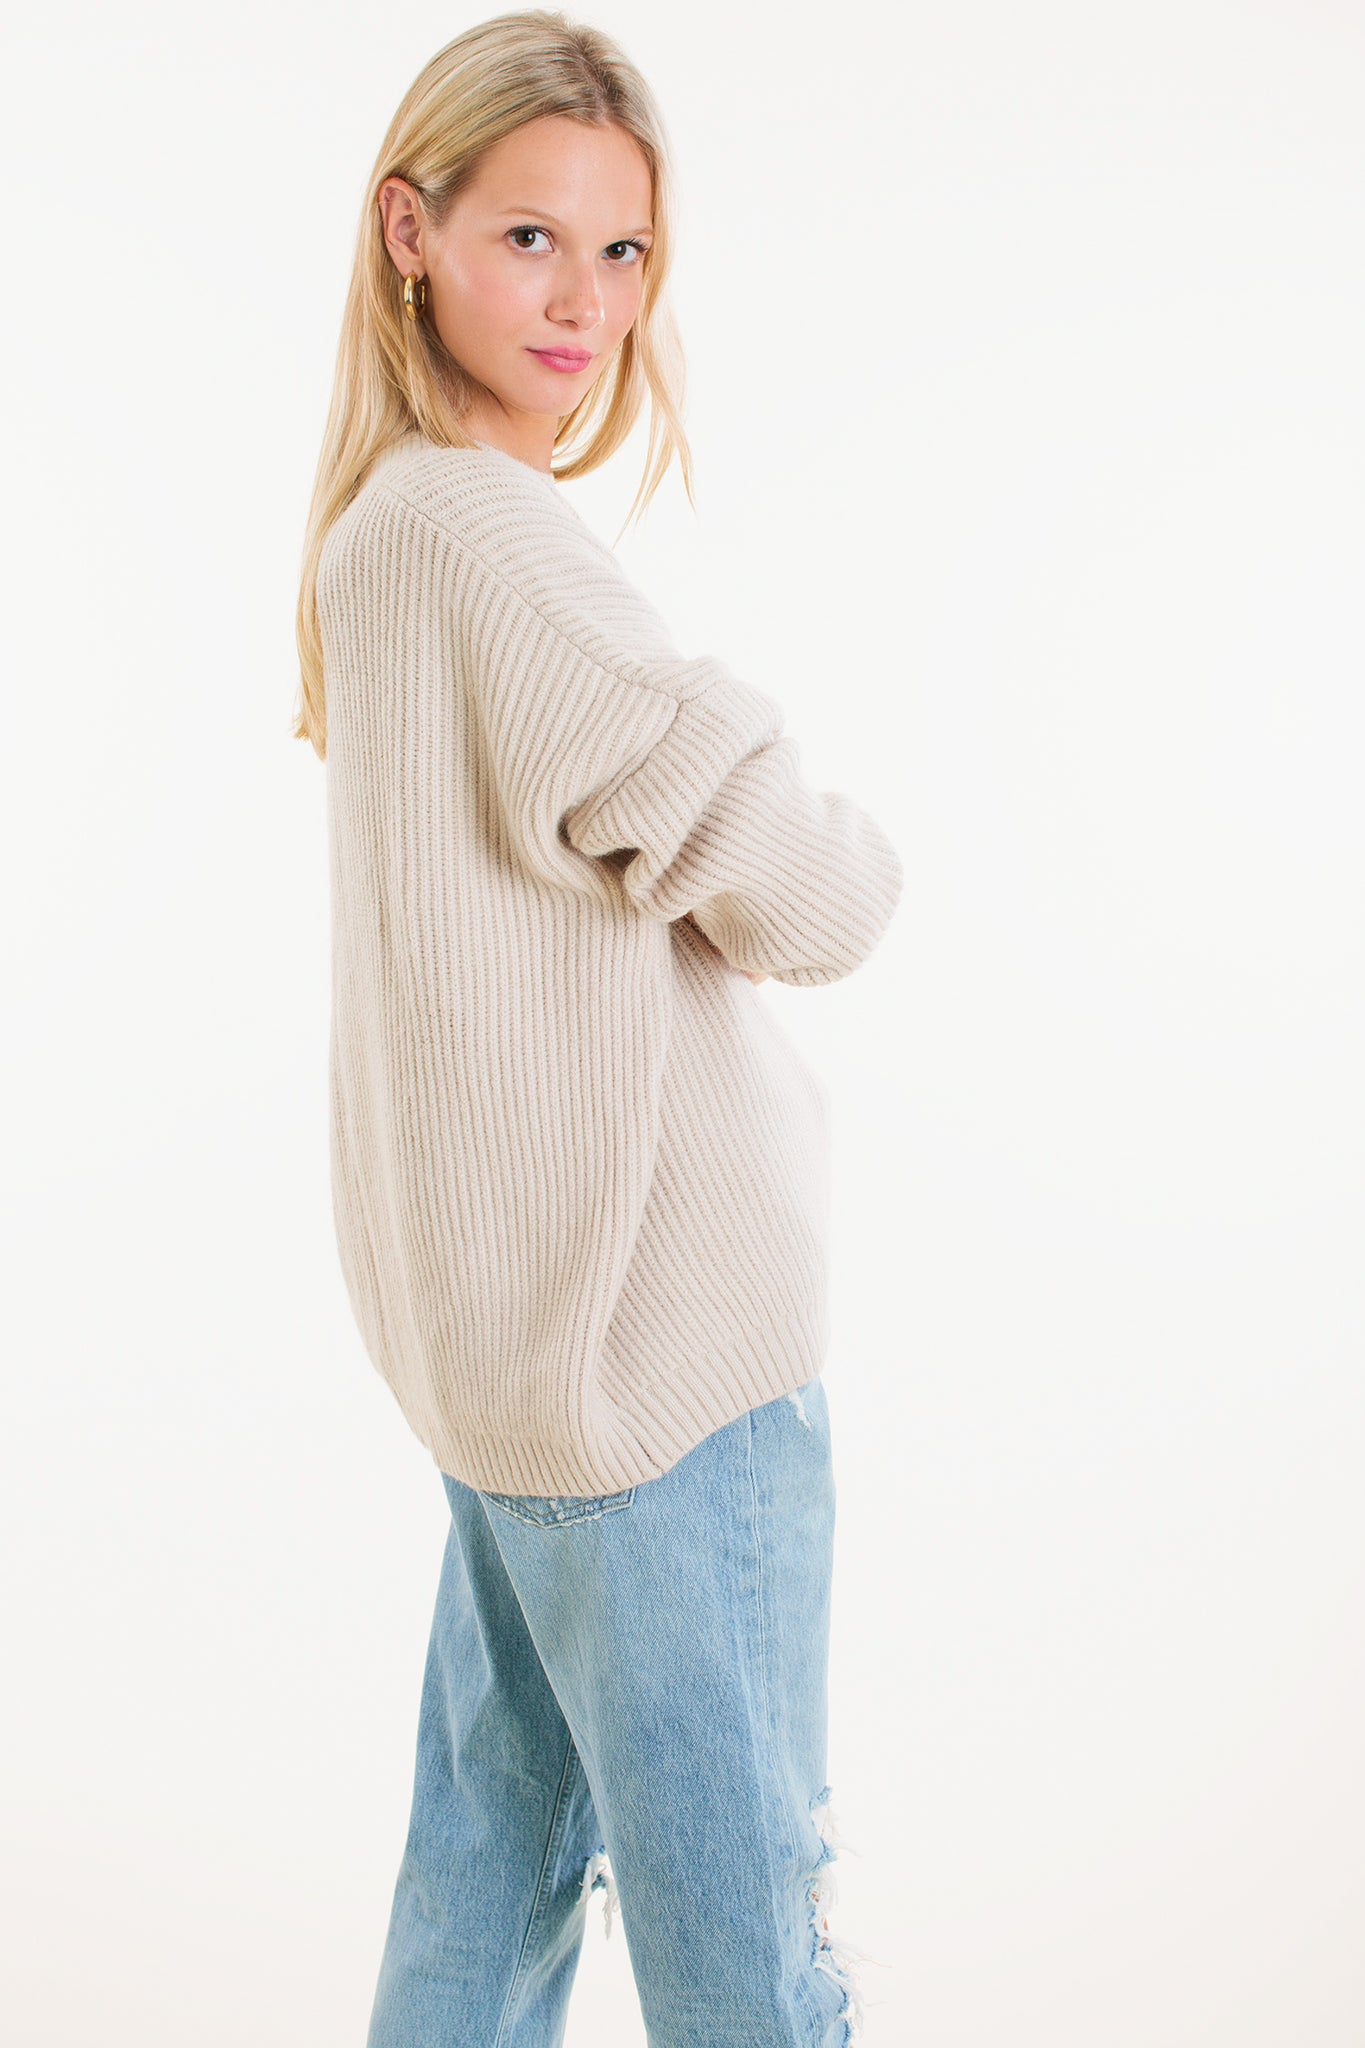 Chloe Knitted Sweater 5